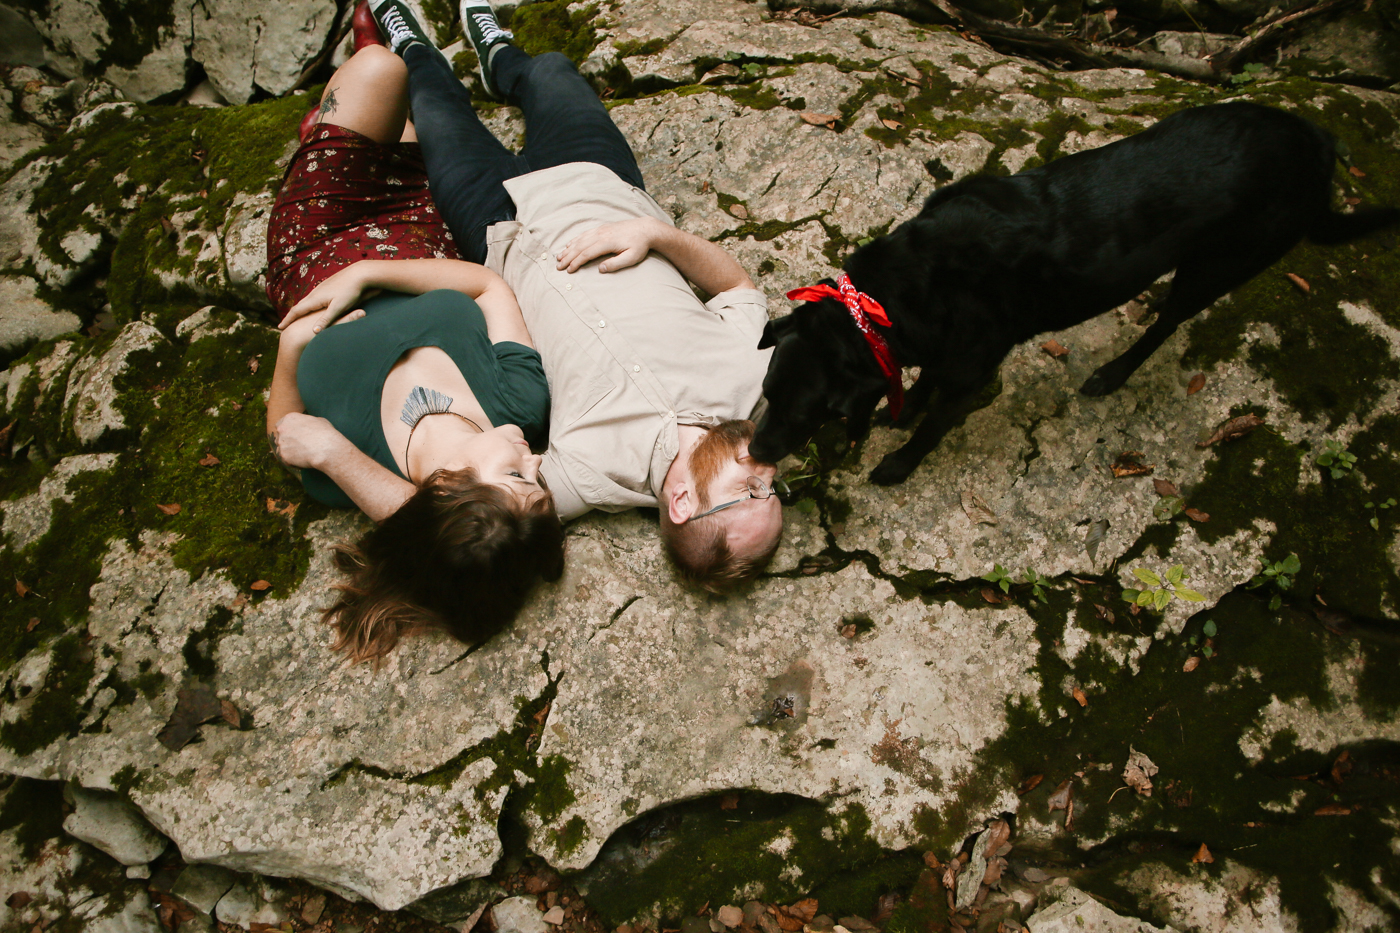 Eastern-Kentucky-Outdoors-Cave-Engagement-Photography-58.jpg